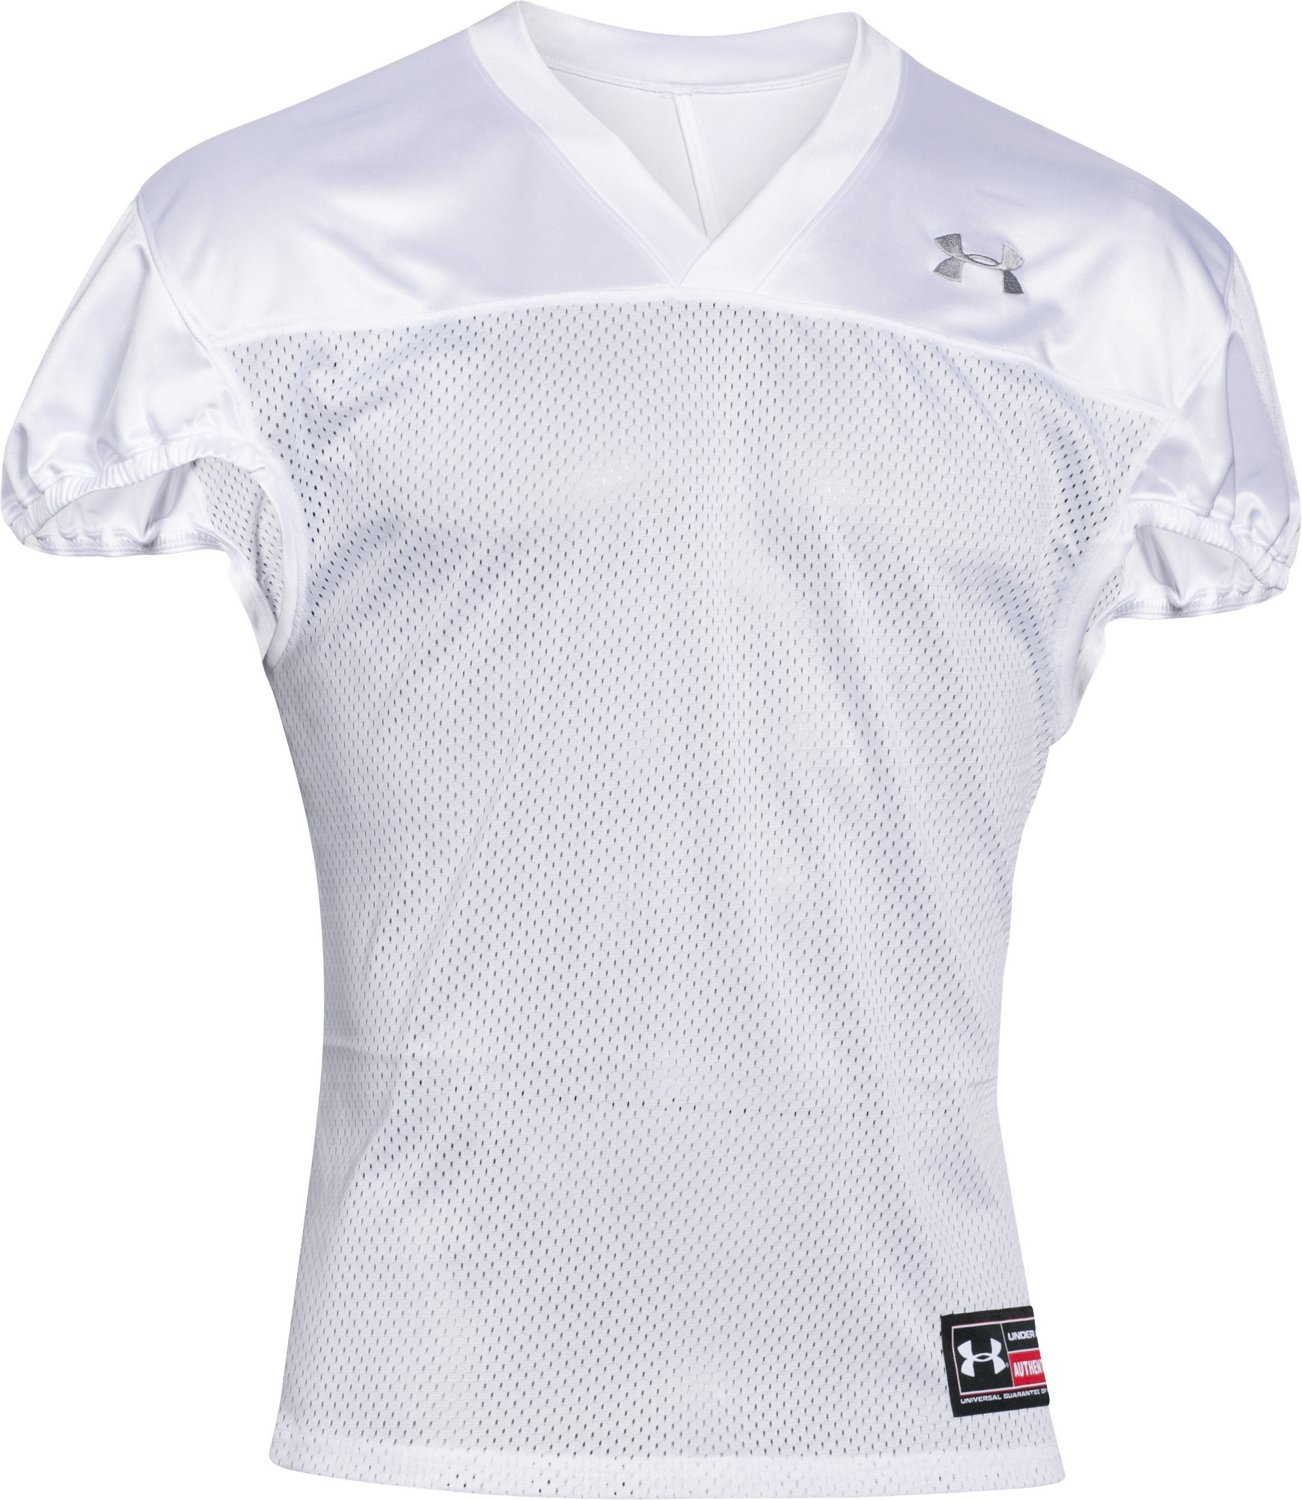 finest selection 11114 89043 Under Armour Men's Football Practice Jersey